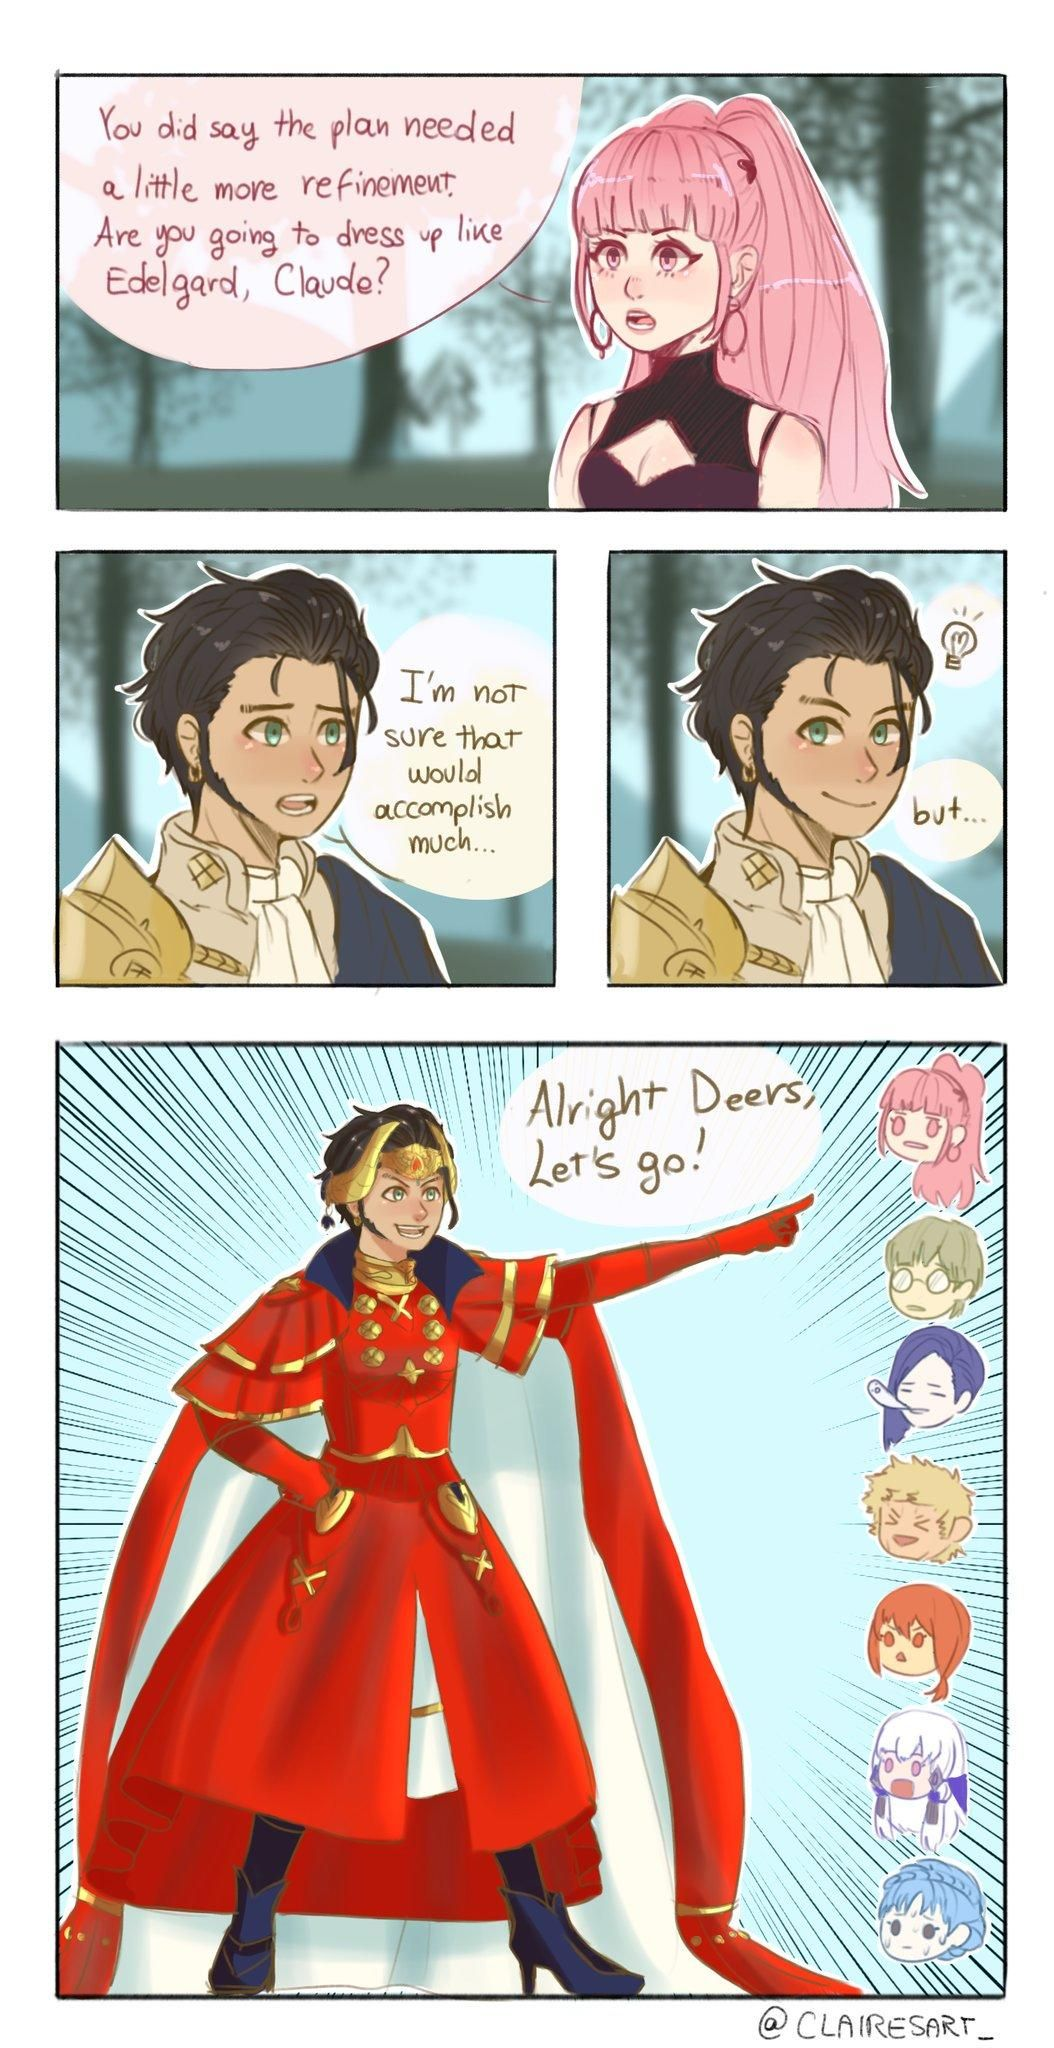 Are You Going To Dress Up Like Edelgard Claude Fire Emblem